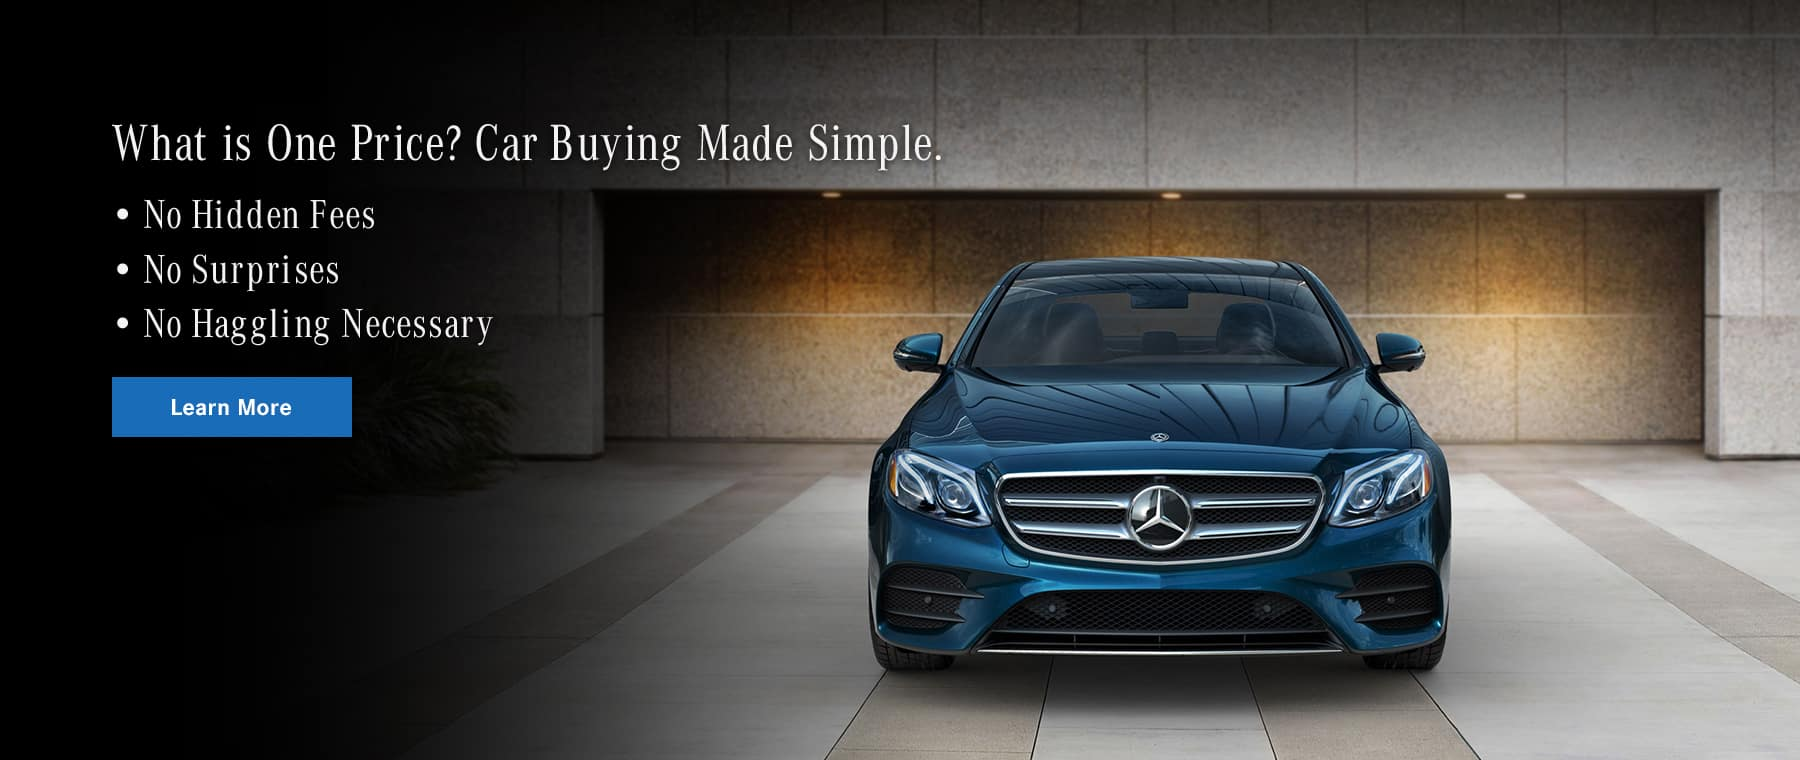 What is Mercedes-Benz One Price? Banner